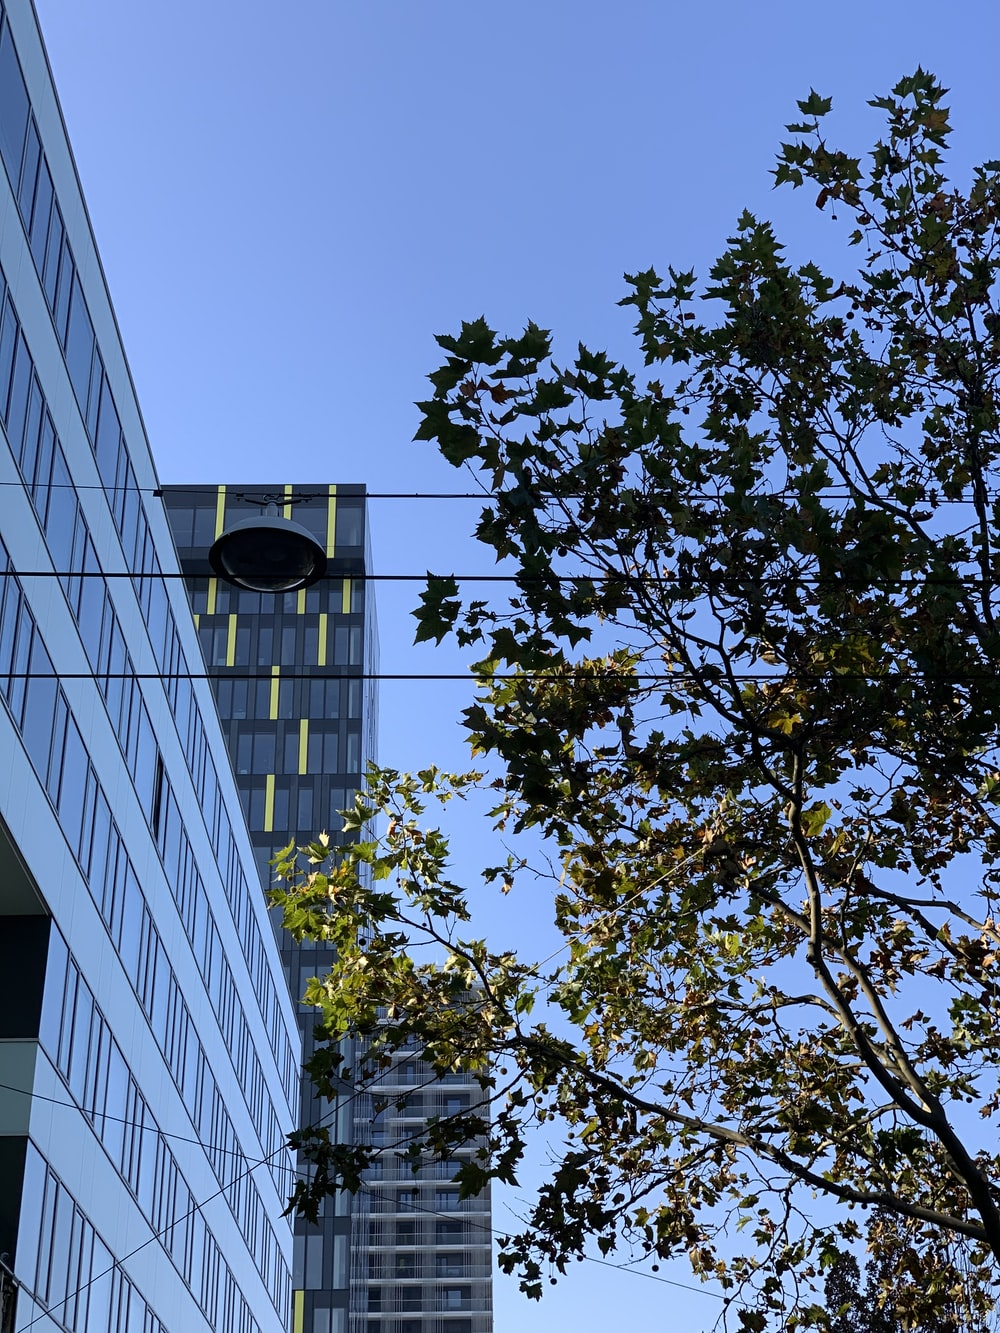 curtain glass wall building near tree during daytime